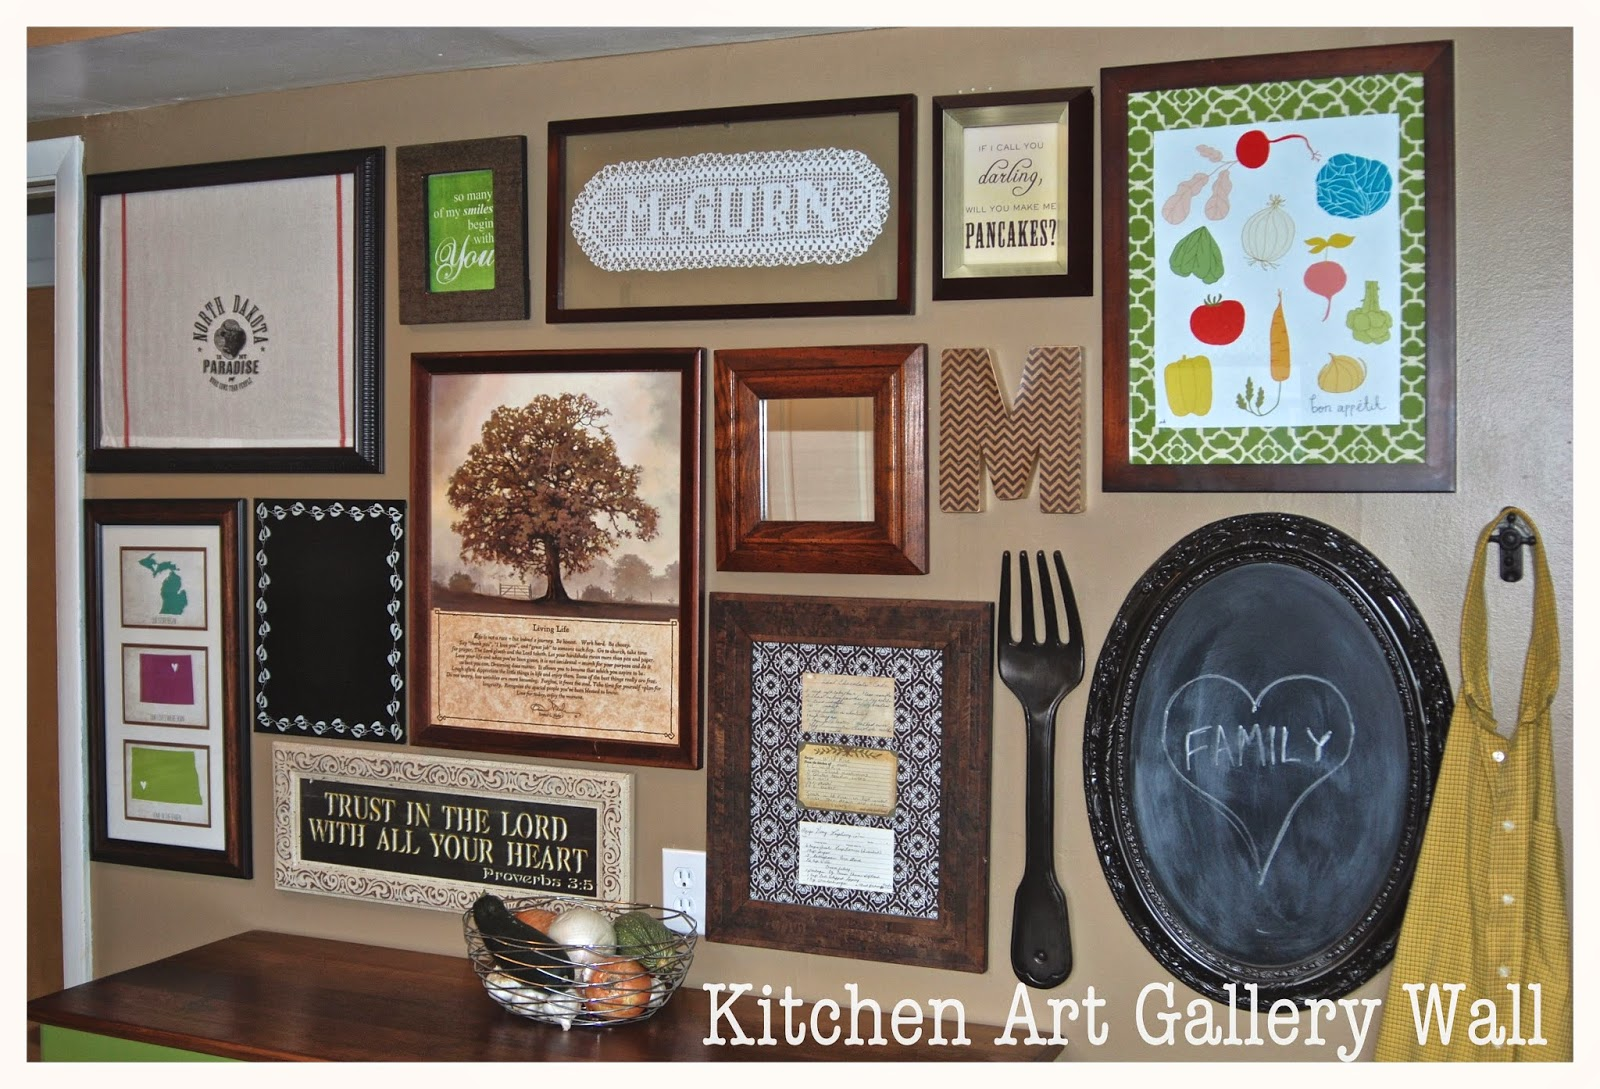 Kitchen Art Gallery Wall- Black, Wood, and Tan